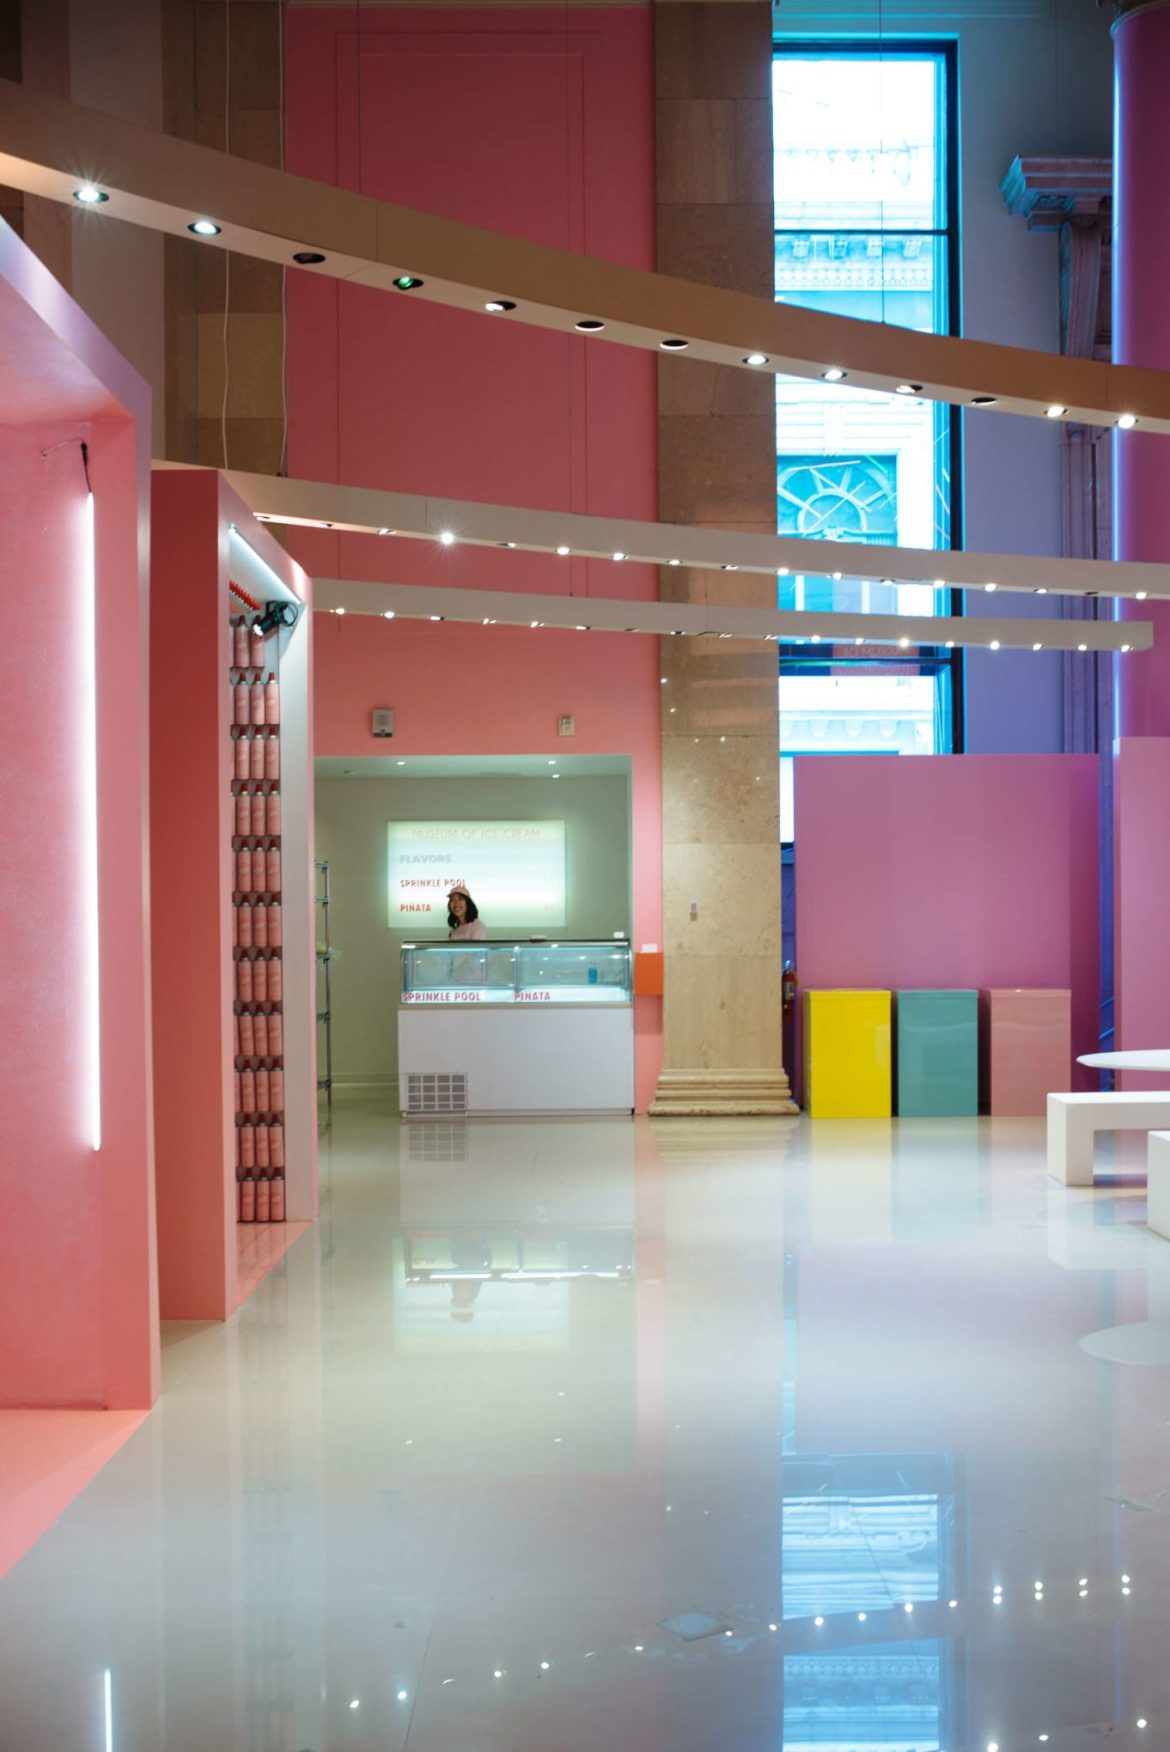 Instagramable photo rooms, banana swings, The Museum of Ice Cream San Francisco, The Taste Edit